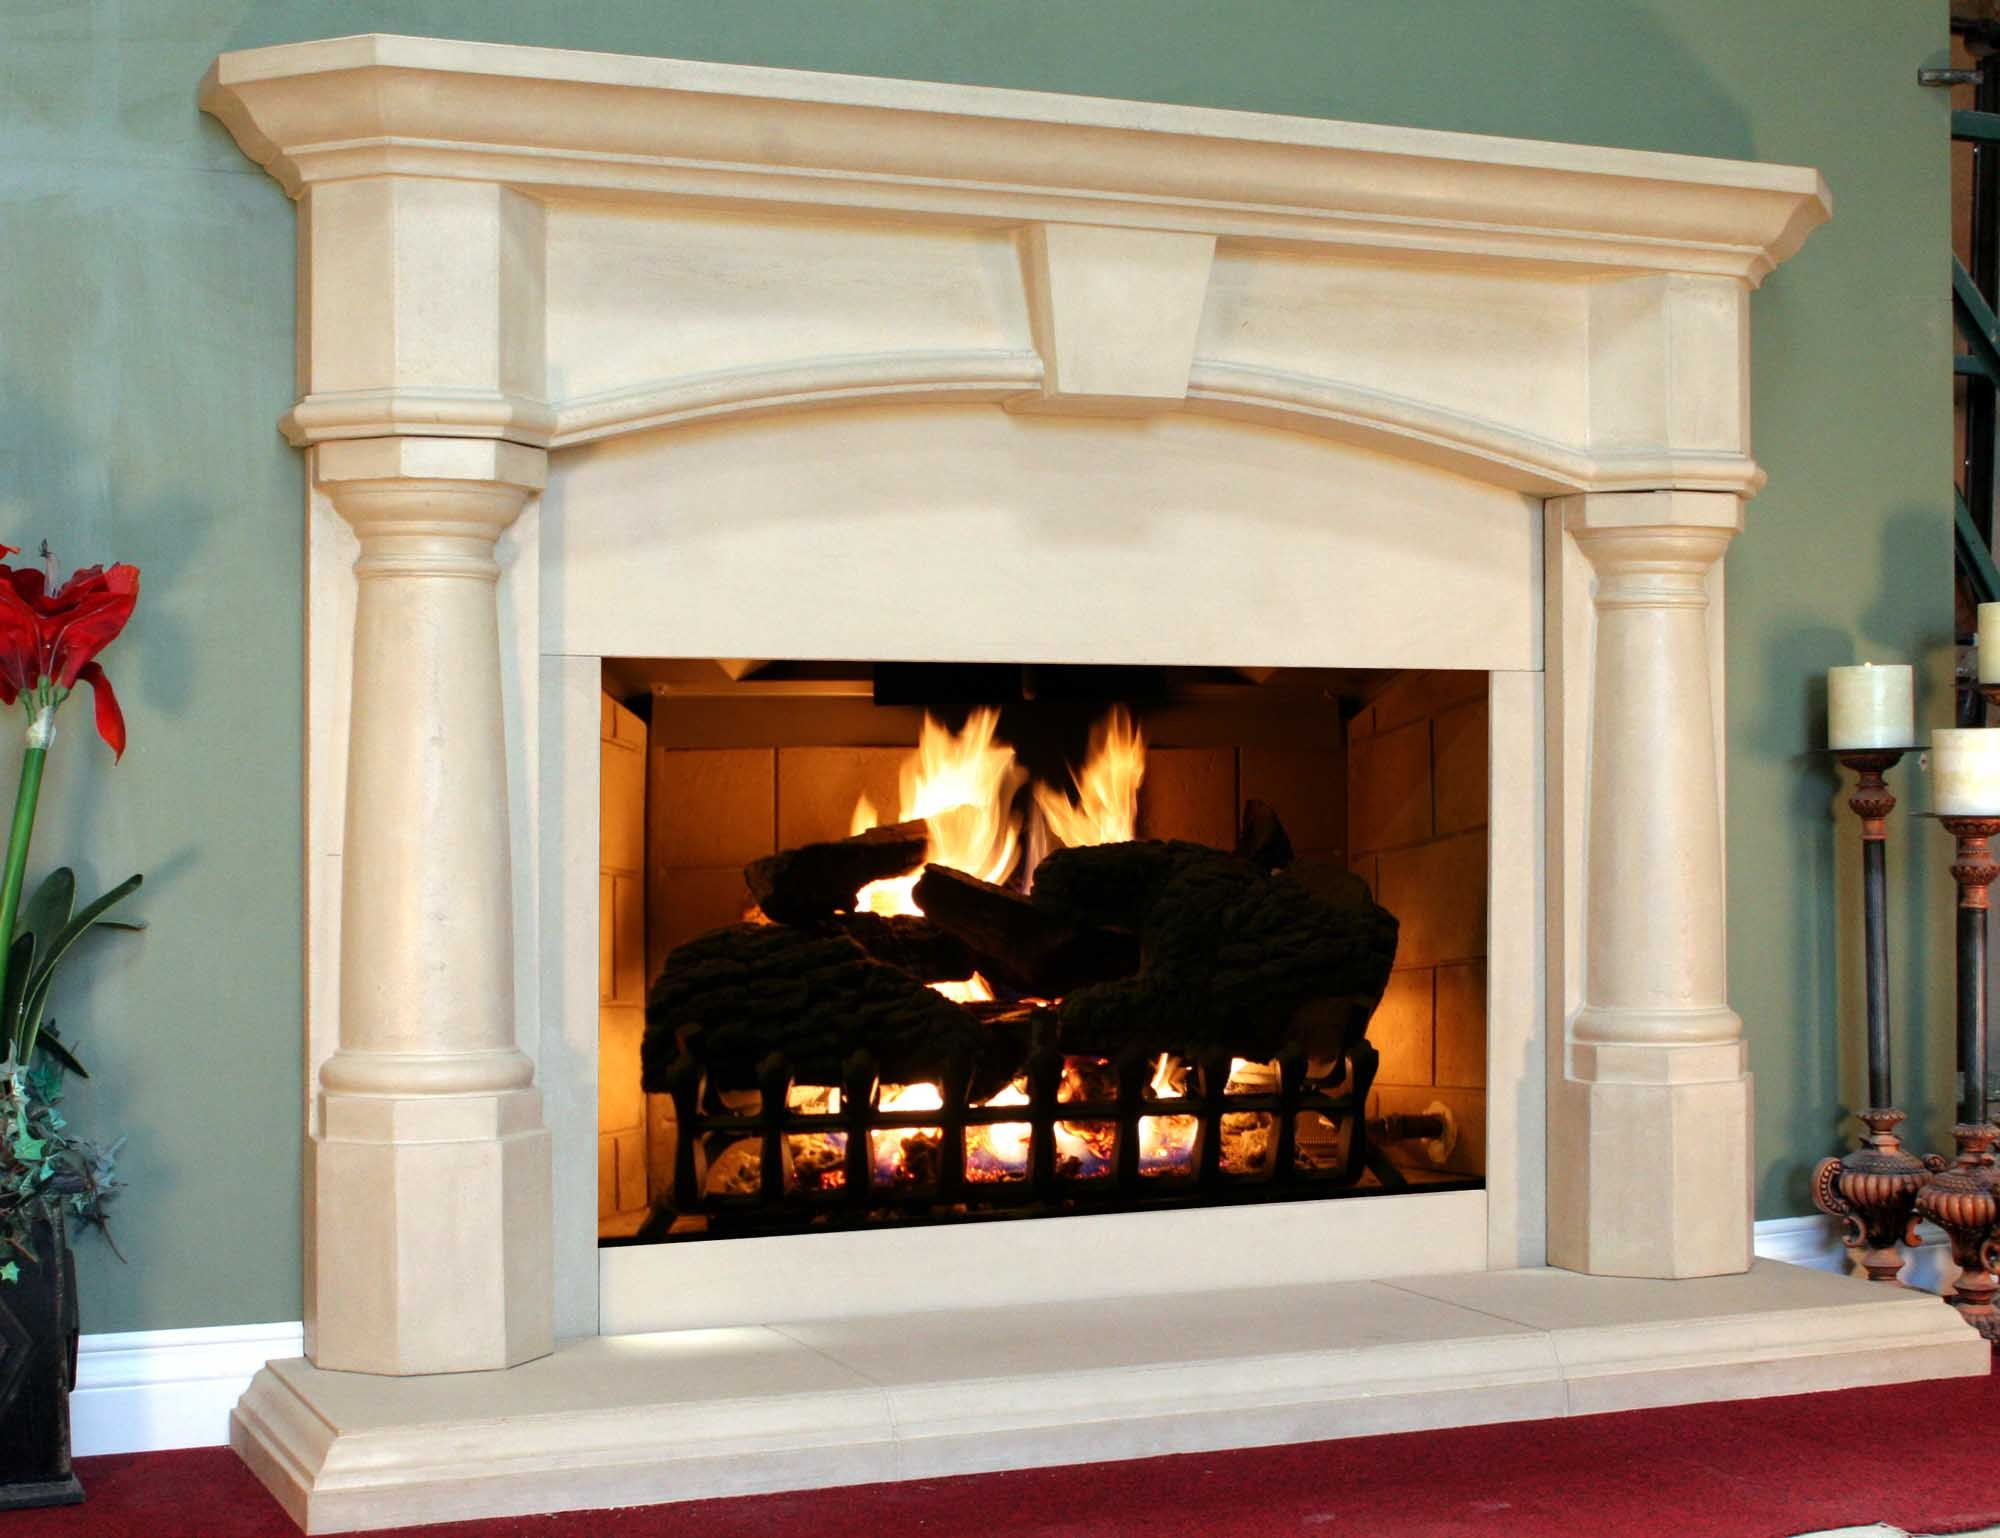 I Love Fireplaces With Images Fireplace Mantel Designs